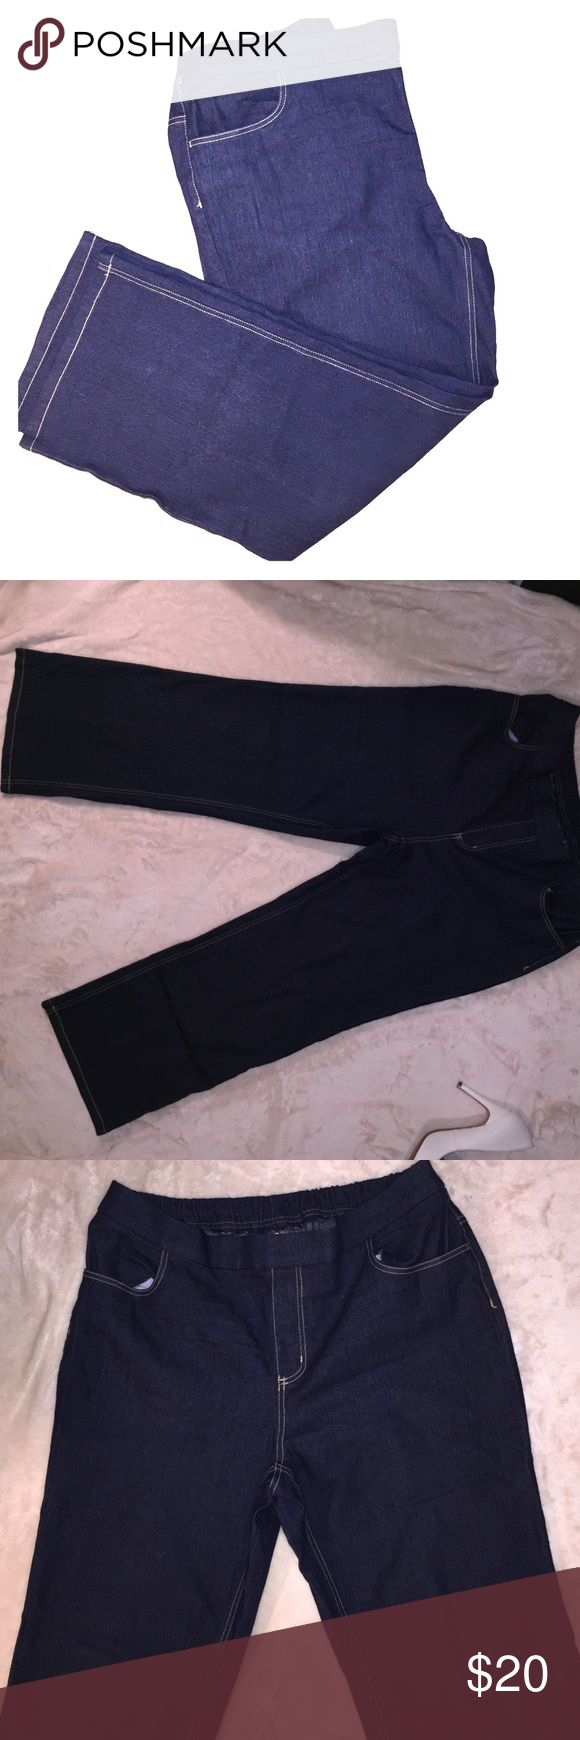 Women's stretchy wide legged dark jeans. White stag brand women's wide legged jeans. Like new. Only worn once, elastic on waste to give you comfort feeling. Size Xlg(16-18) petite. Length:38inch wide:from waist: 18 inch with stretchable elastic band. White Stag Jeans Flare & Wide Leg